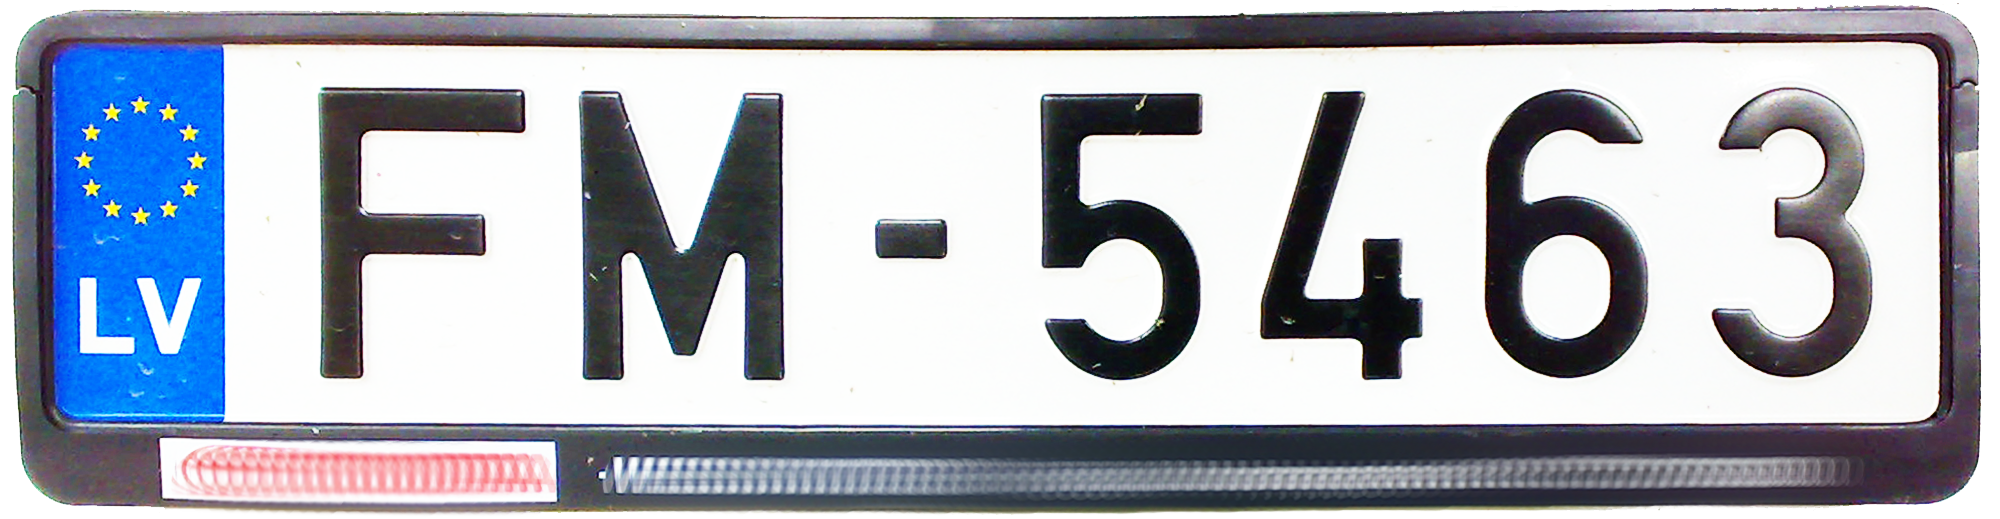 Car Registration Numbers For Sale Uk